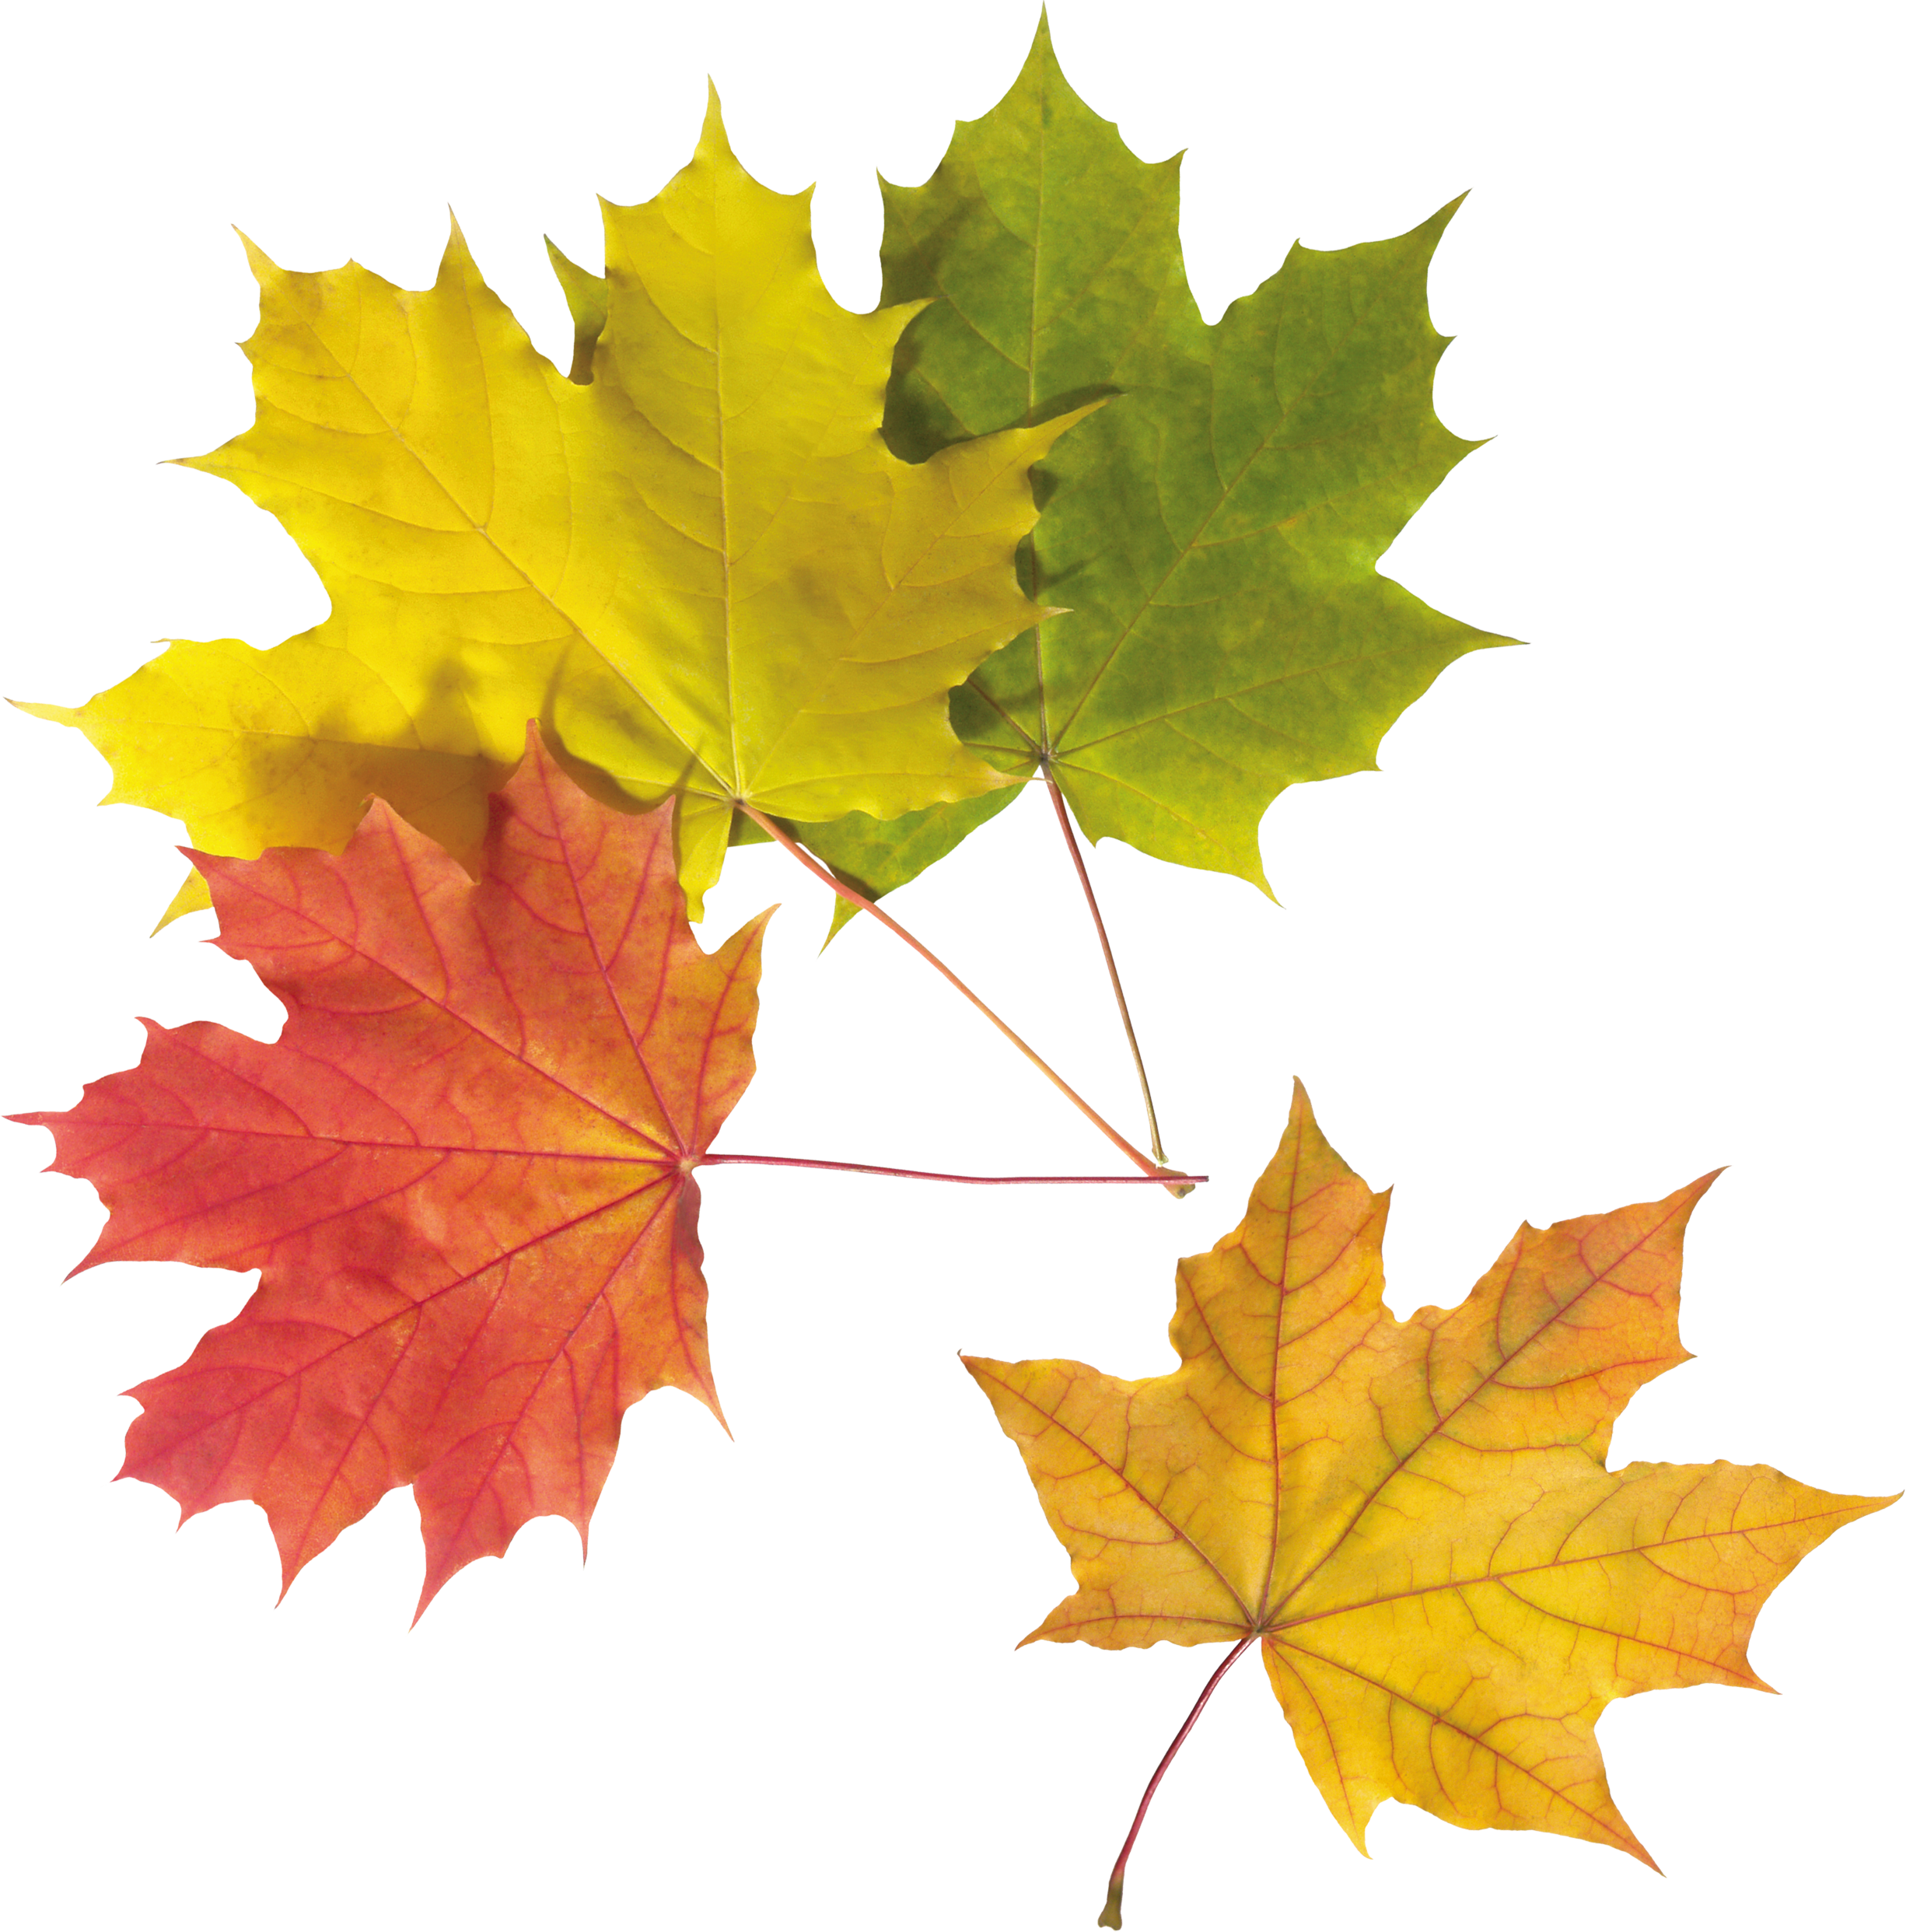 Png Images Fall Leaves Png Autumn Leaves Leaves